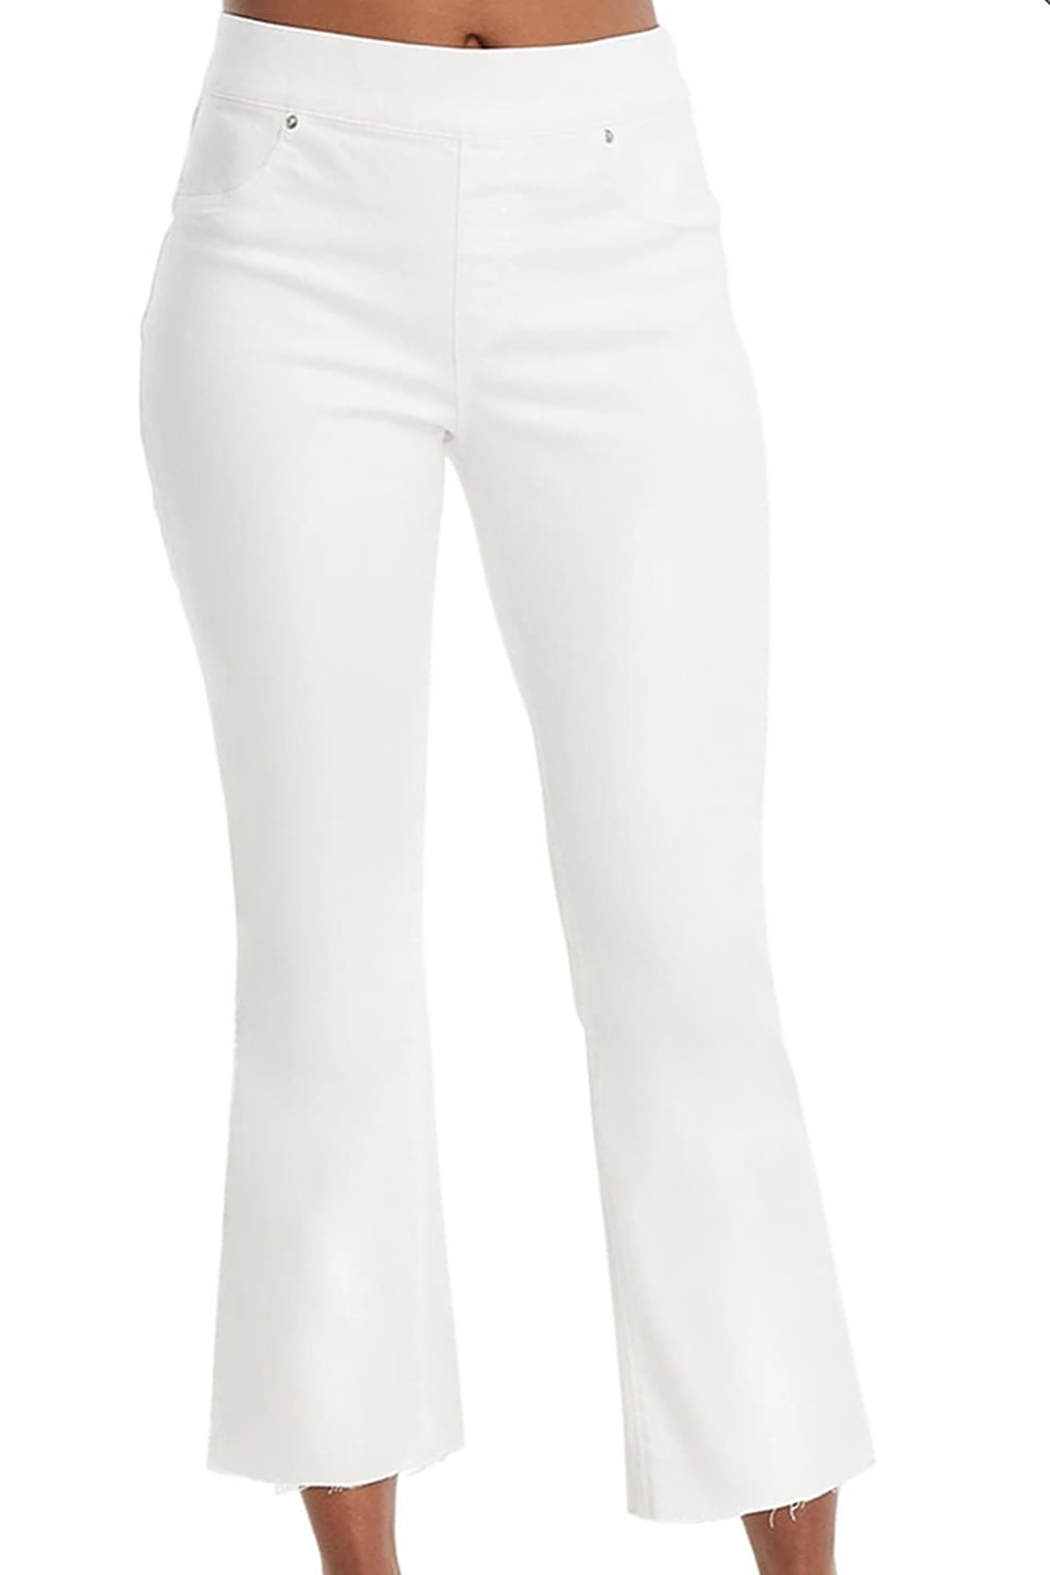 Spanx Cropped flare jean - Main Image